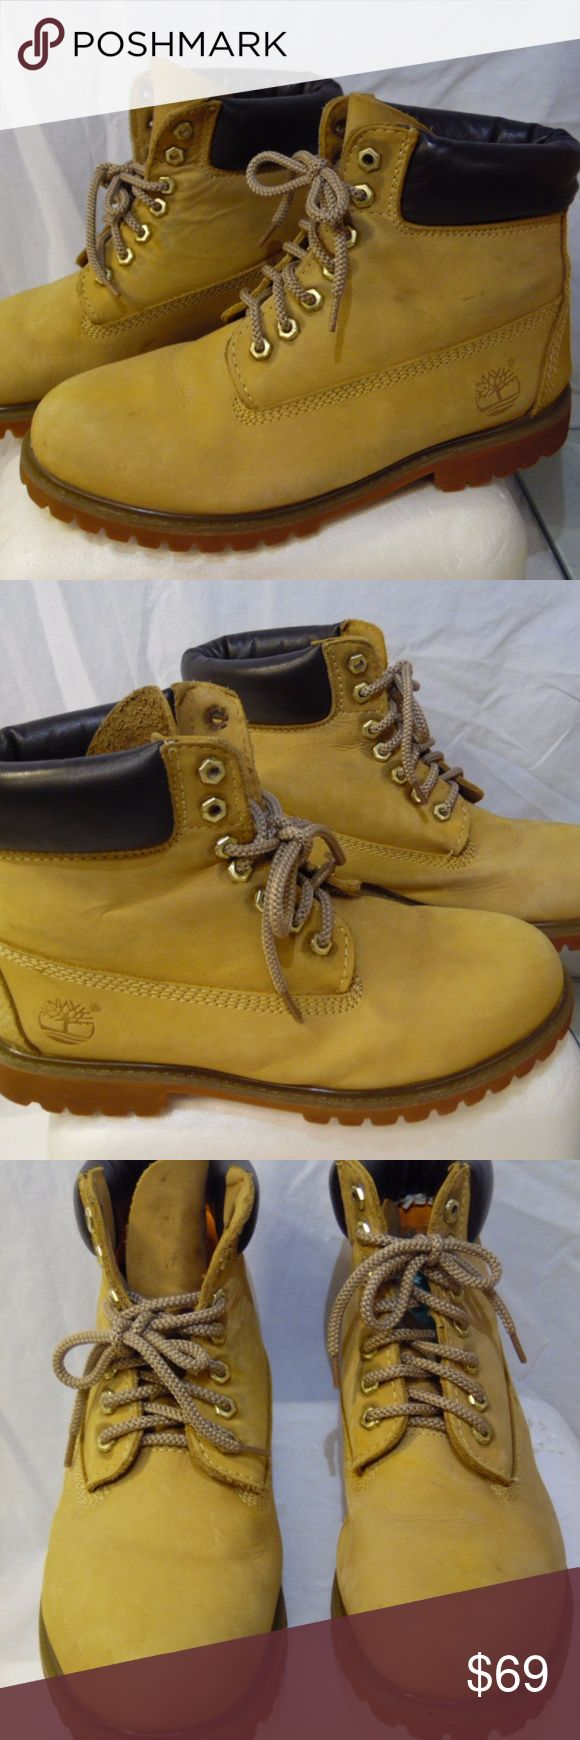 Timberlands men's tan boots size 11M 20% OFF DURING 48 HOUR SALE ONLY...NO OFFERS ARE CONSIDERED..Pre owned, lightly used, light scuffs in front, no wear. clean and pristine.. Timberland Shoes Boots